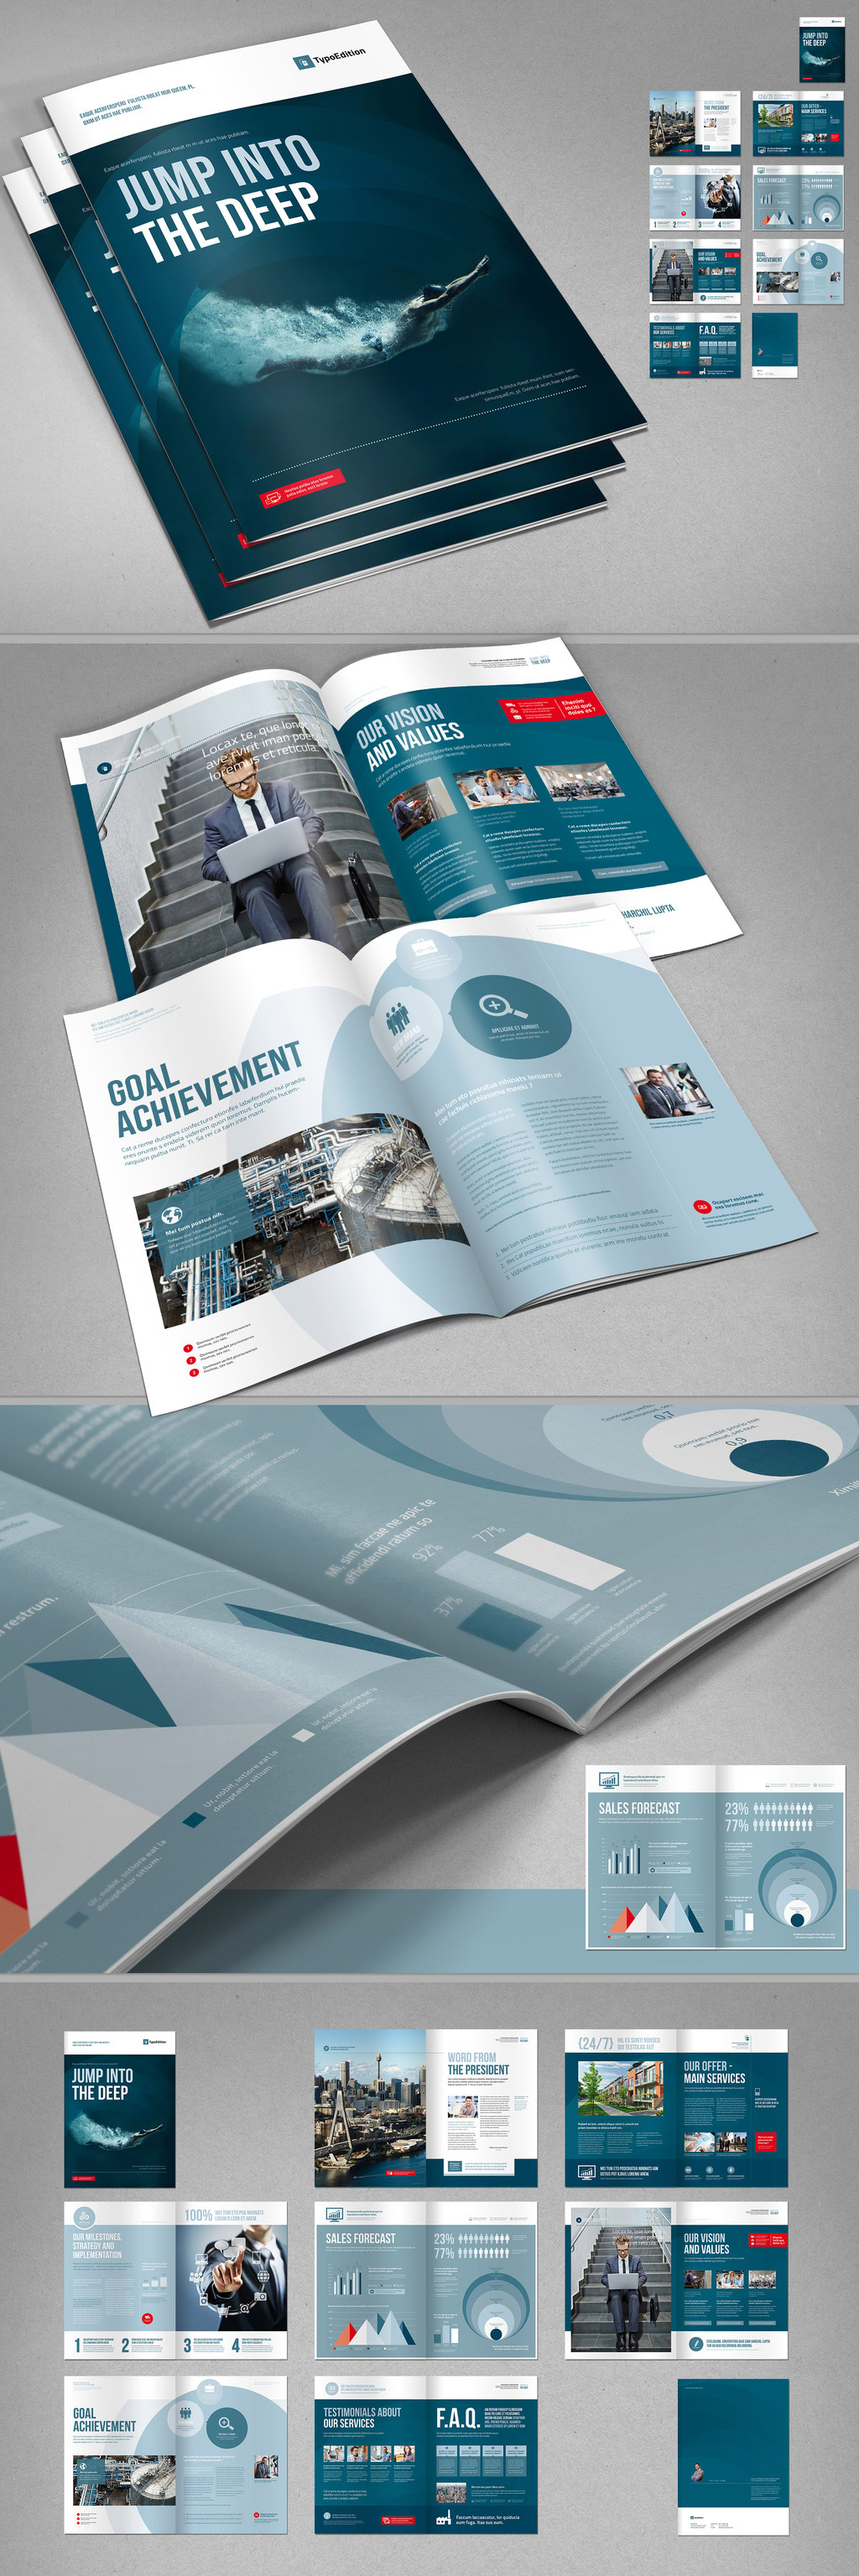 Corporate brochure template with blue accents.